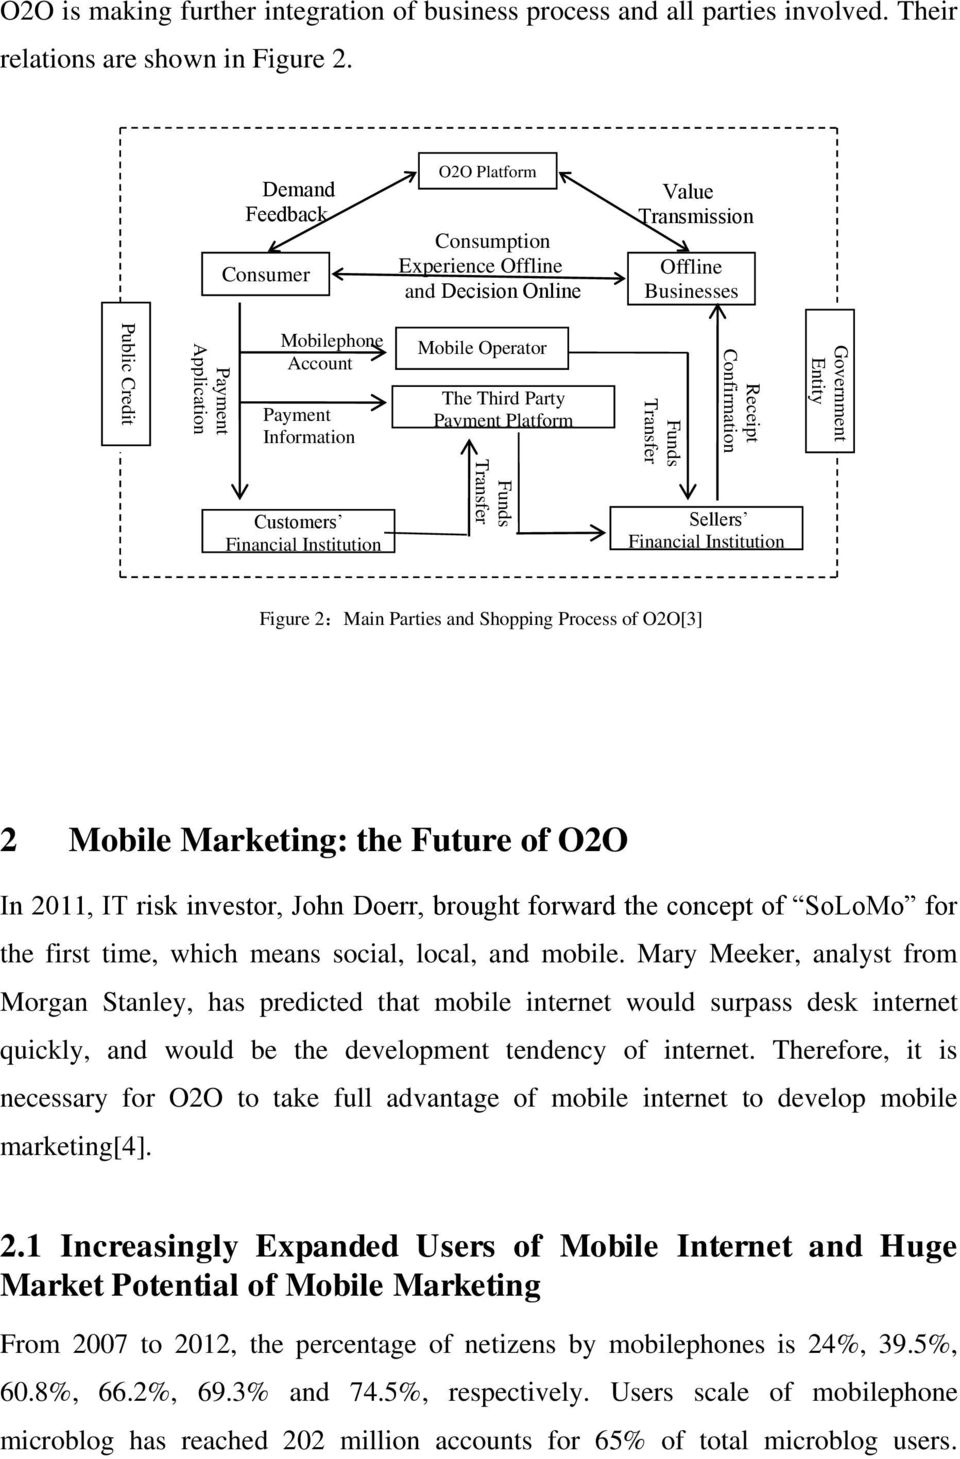 Demand Feedback Consumer O2O Platform Consumption Experience Offline and Decision Online Value Transmission Offline Businesses Mobilephone Account Payment Information Mobile Operator The Third Party